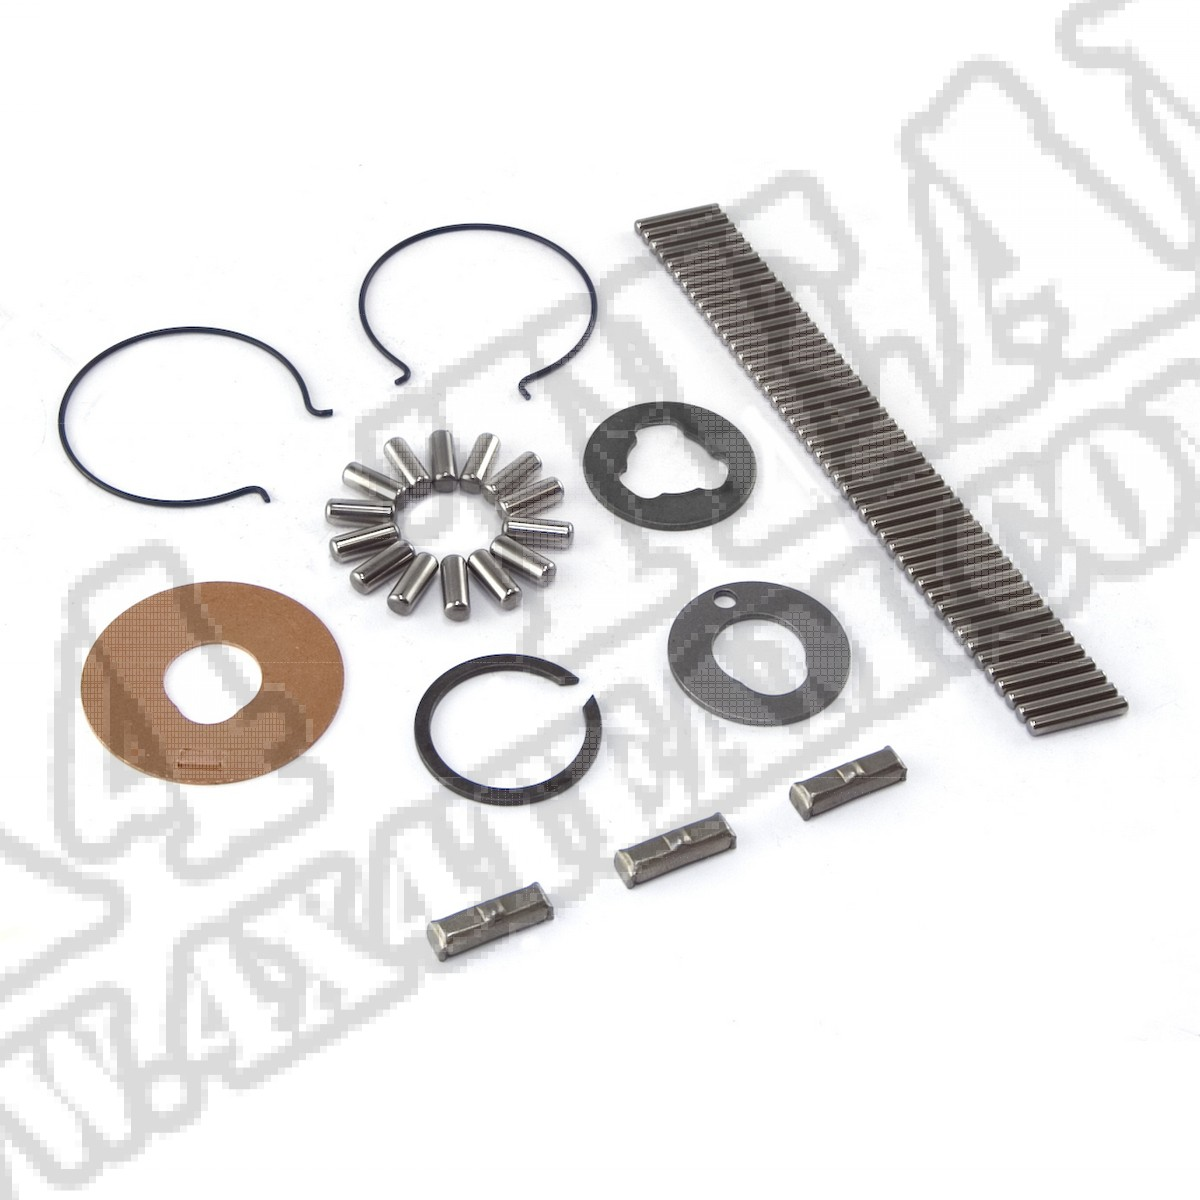 Transmission Small Parts Kit, T84; 41-45 Willys MB/Ford GPW